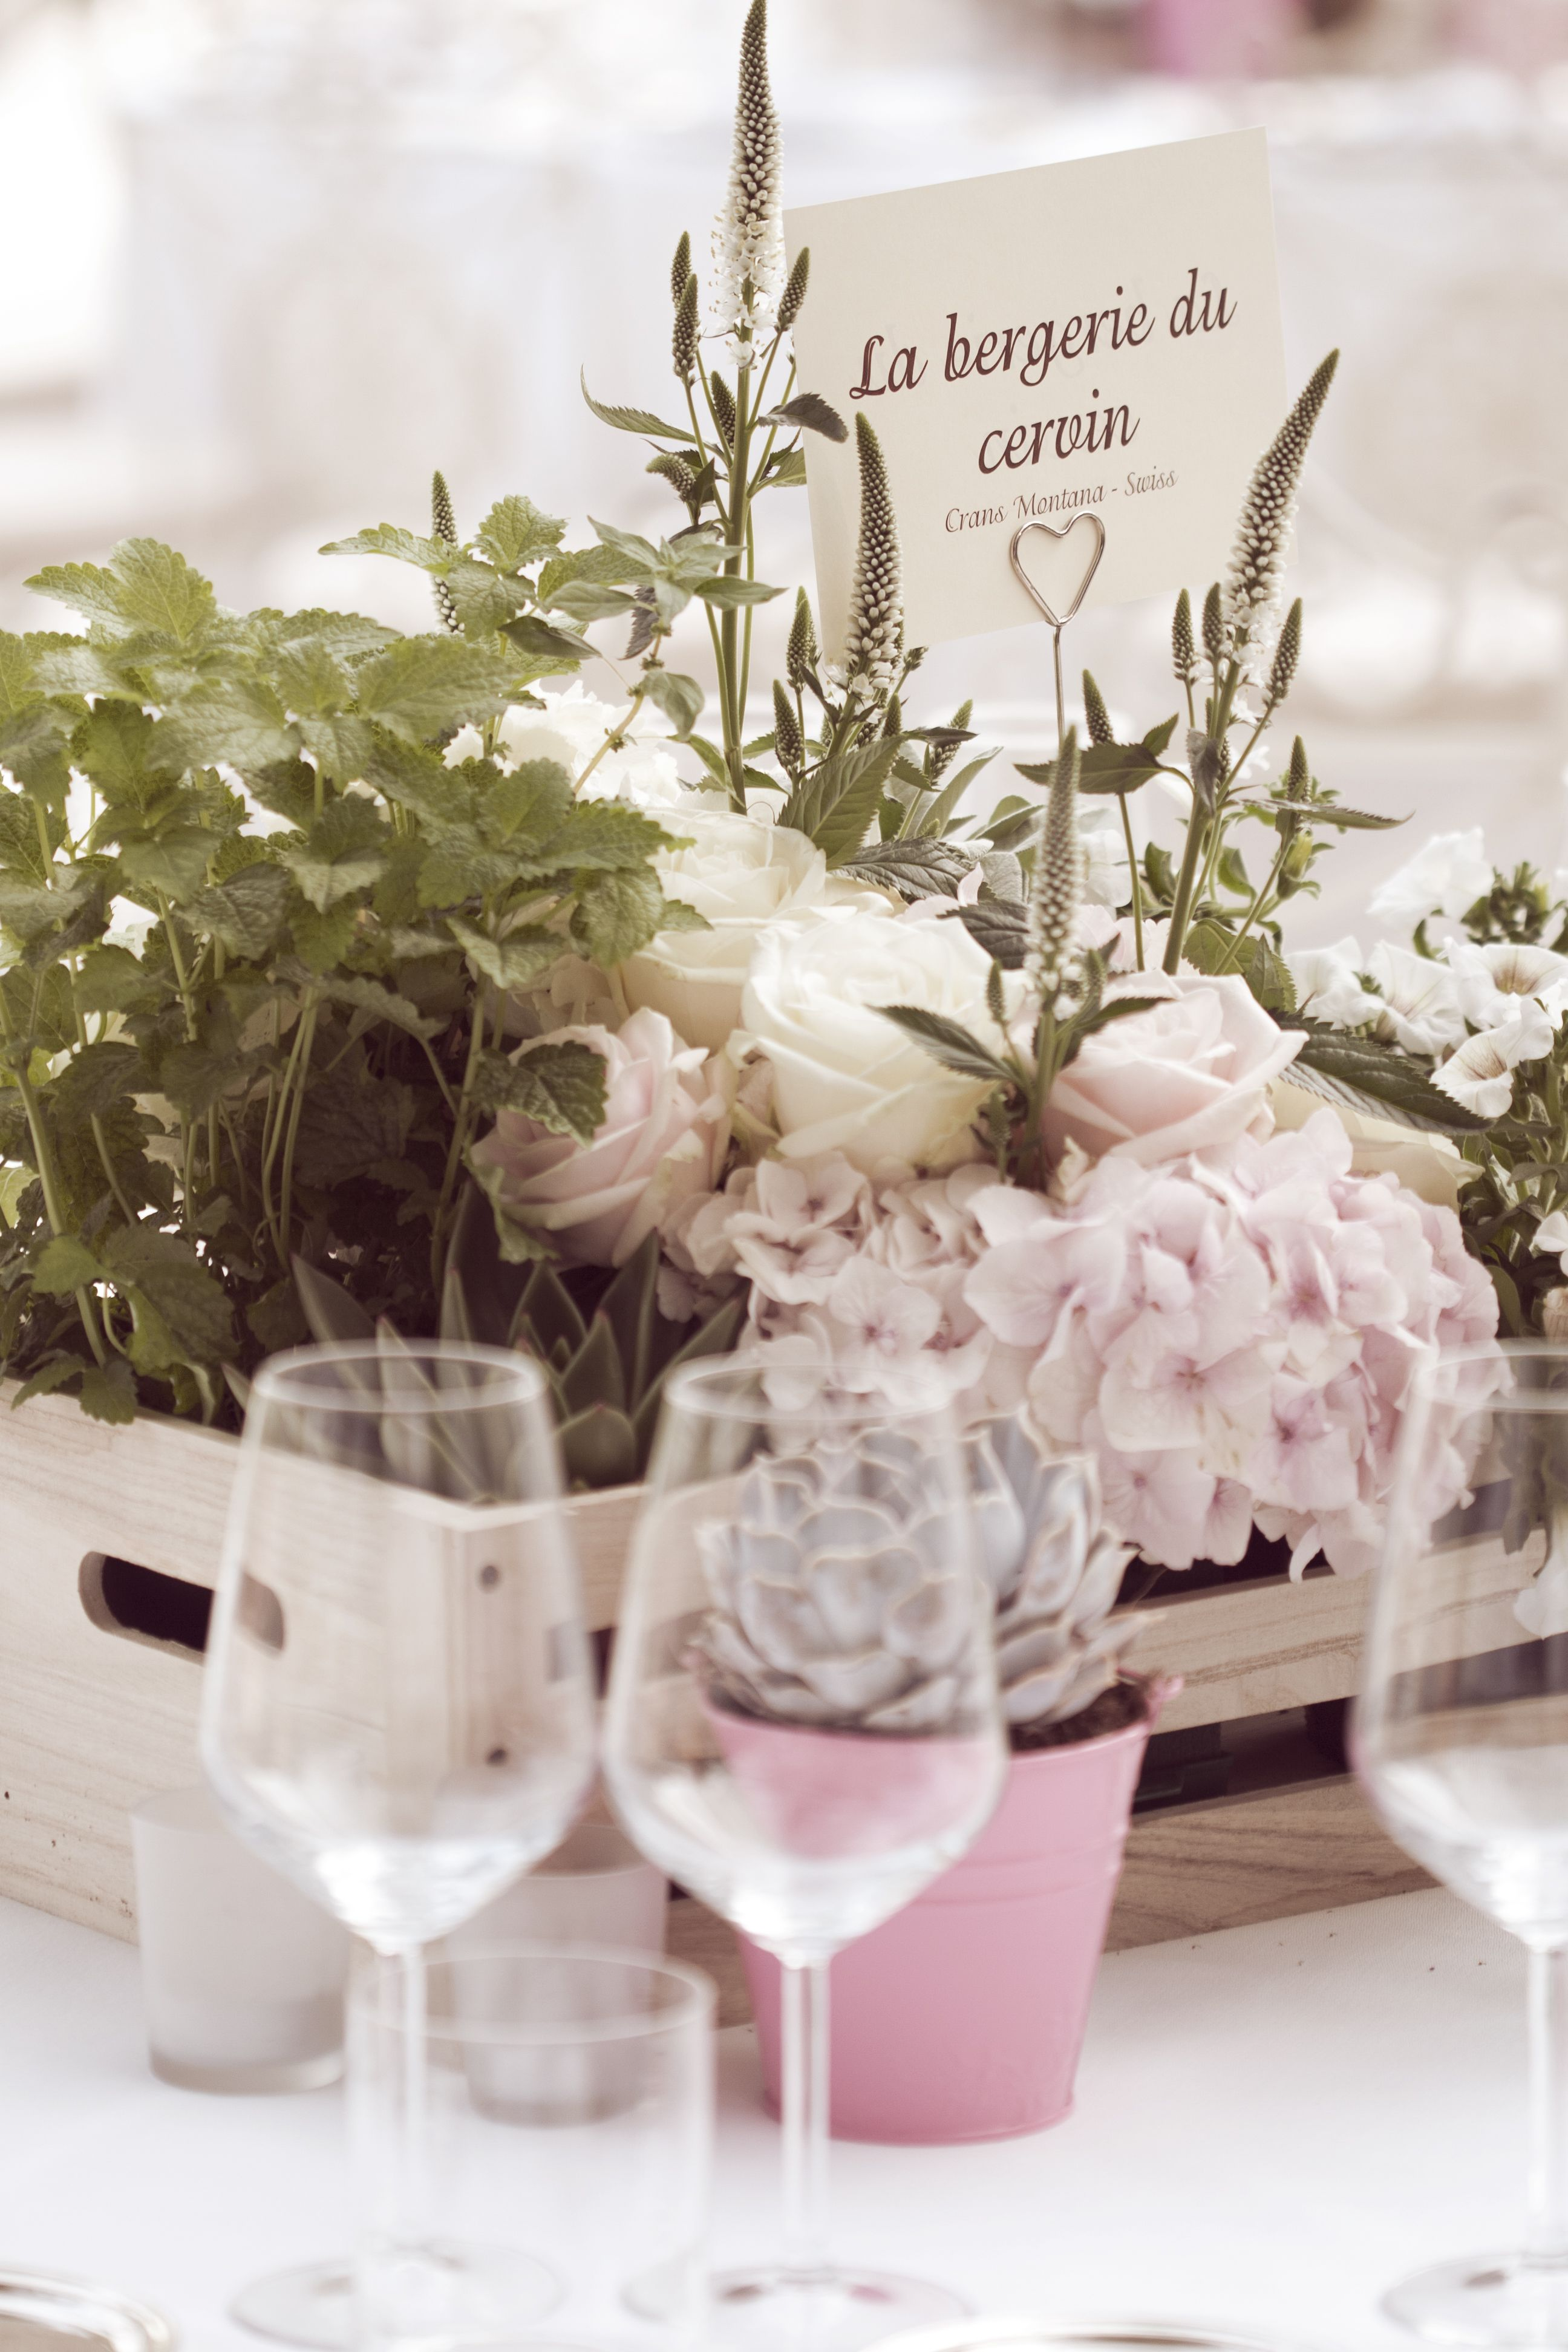 Wedding decorations natural  Dinner wedding centerpiece with wood boxes and natural soft flower